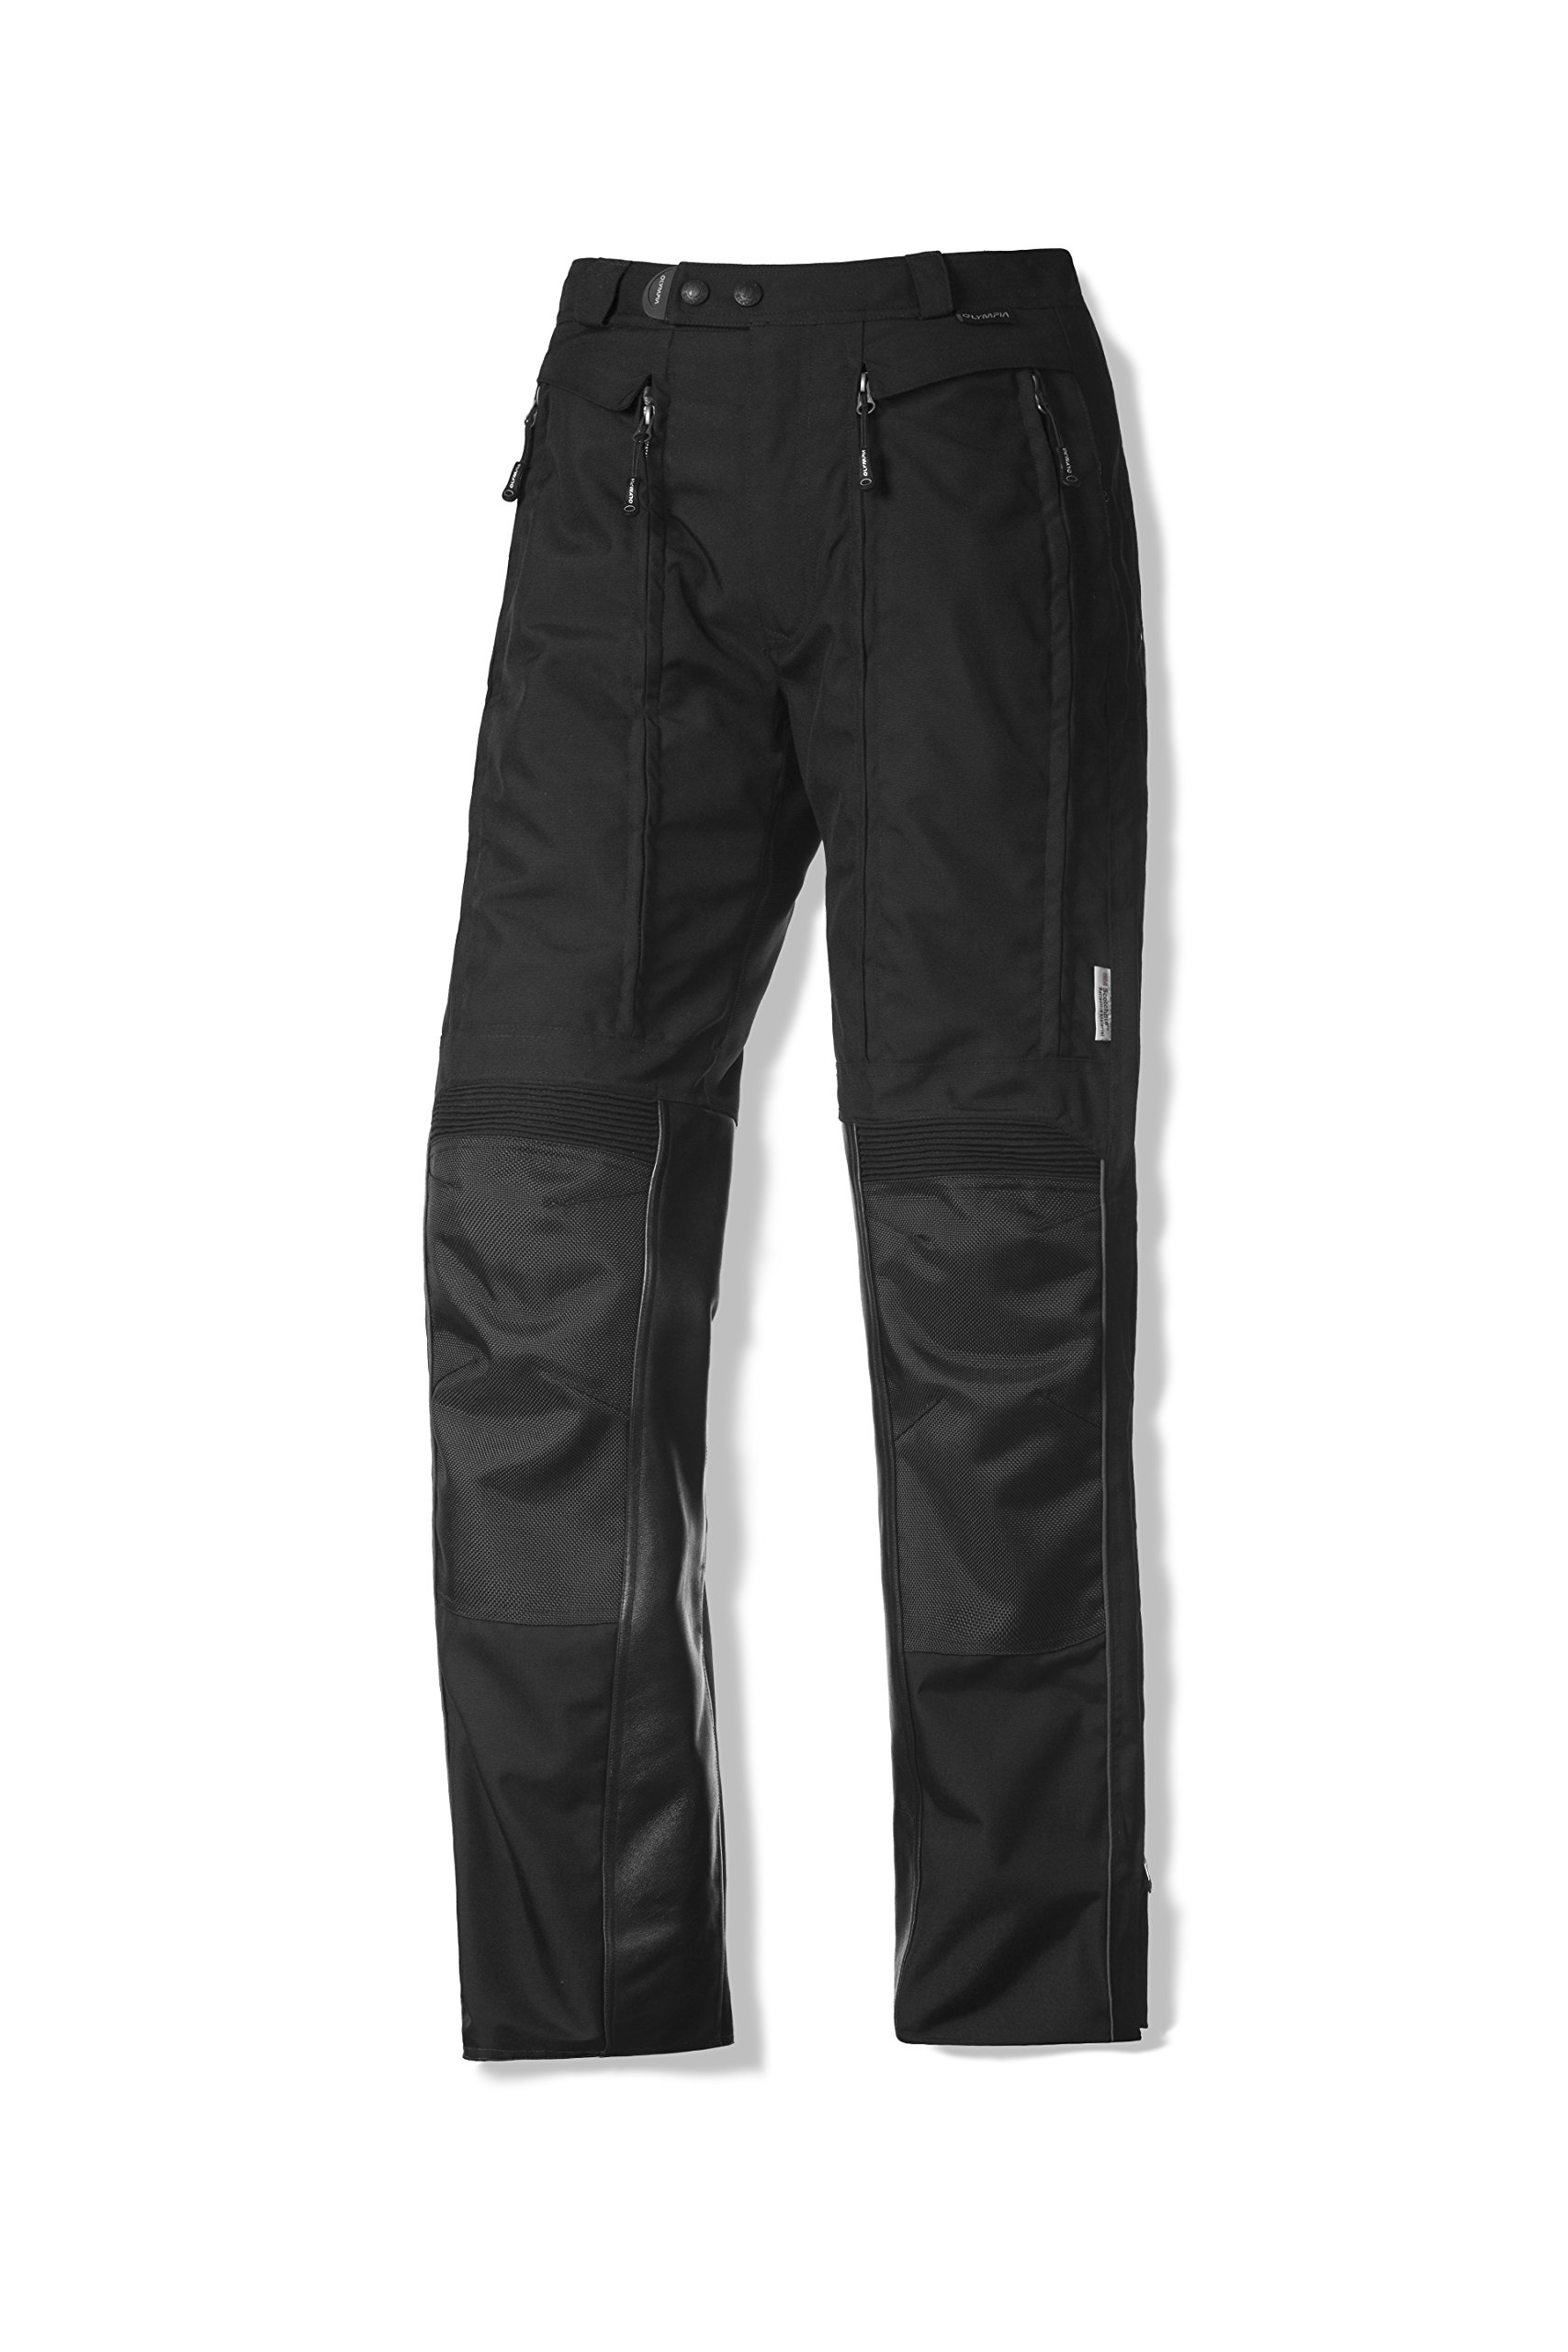 Olympia Sports X Moto 2 Men's Mesh Tech Street Racing Motorcycle Pants Black / Size 34